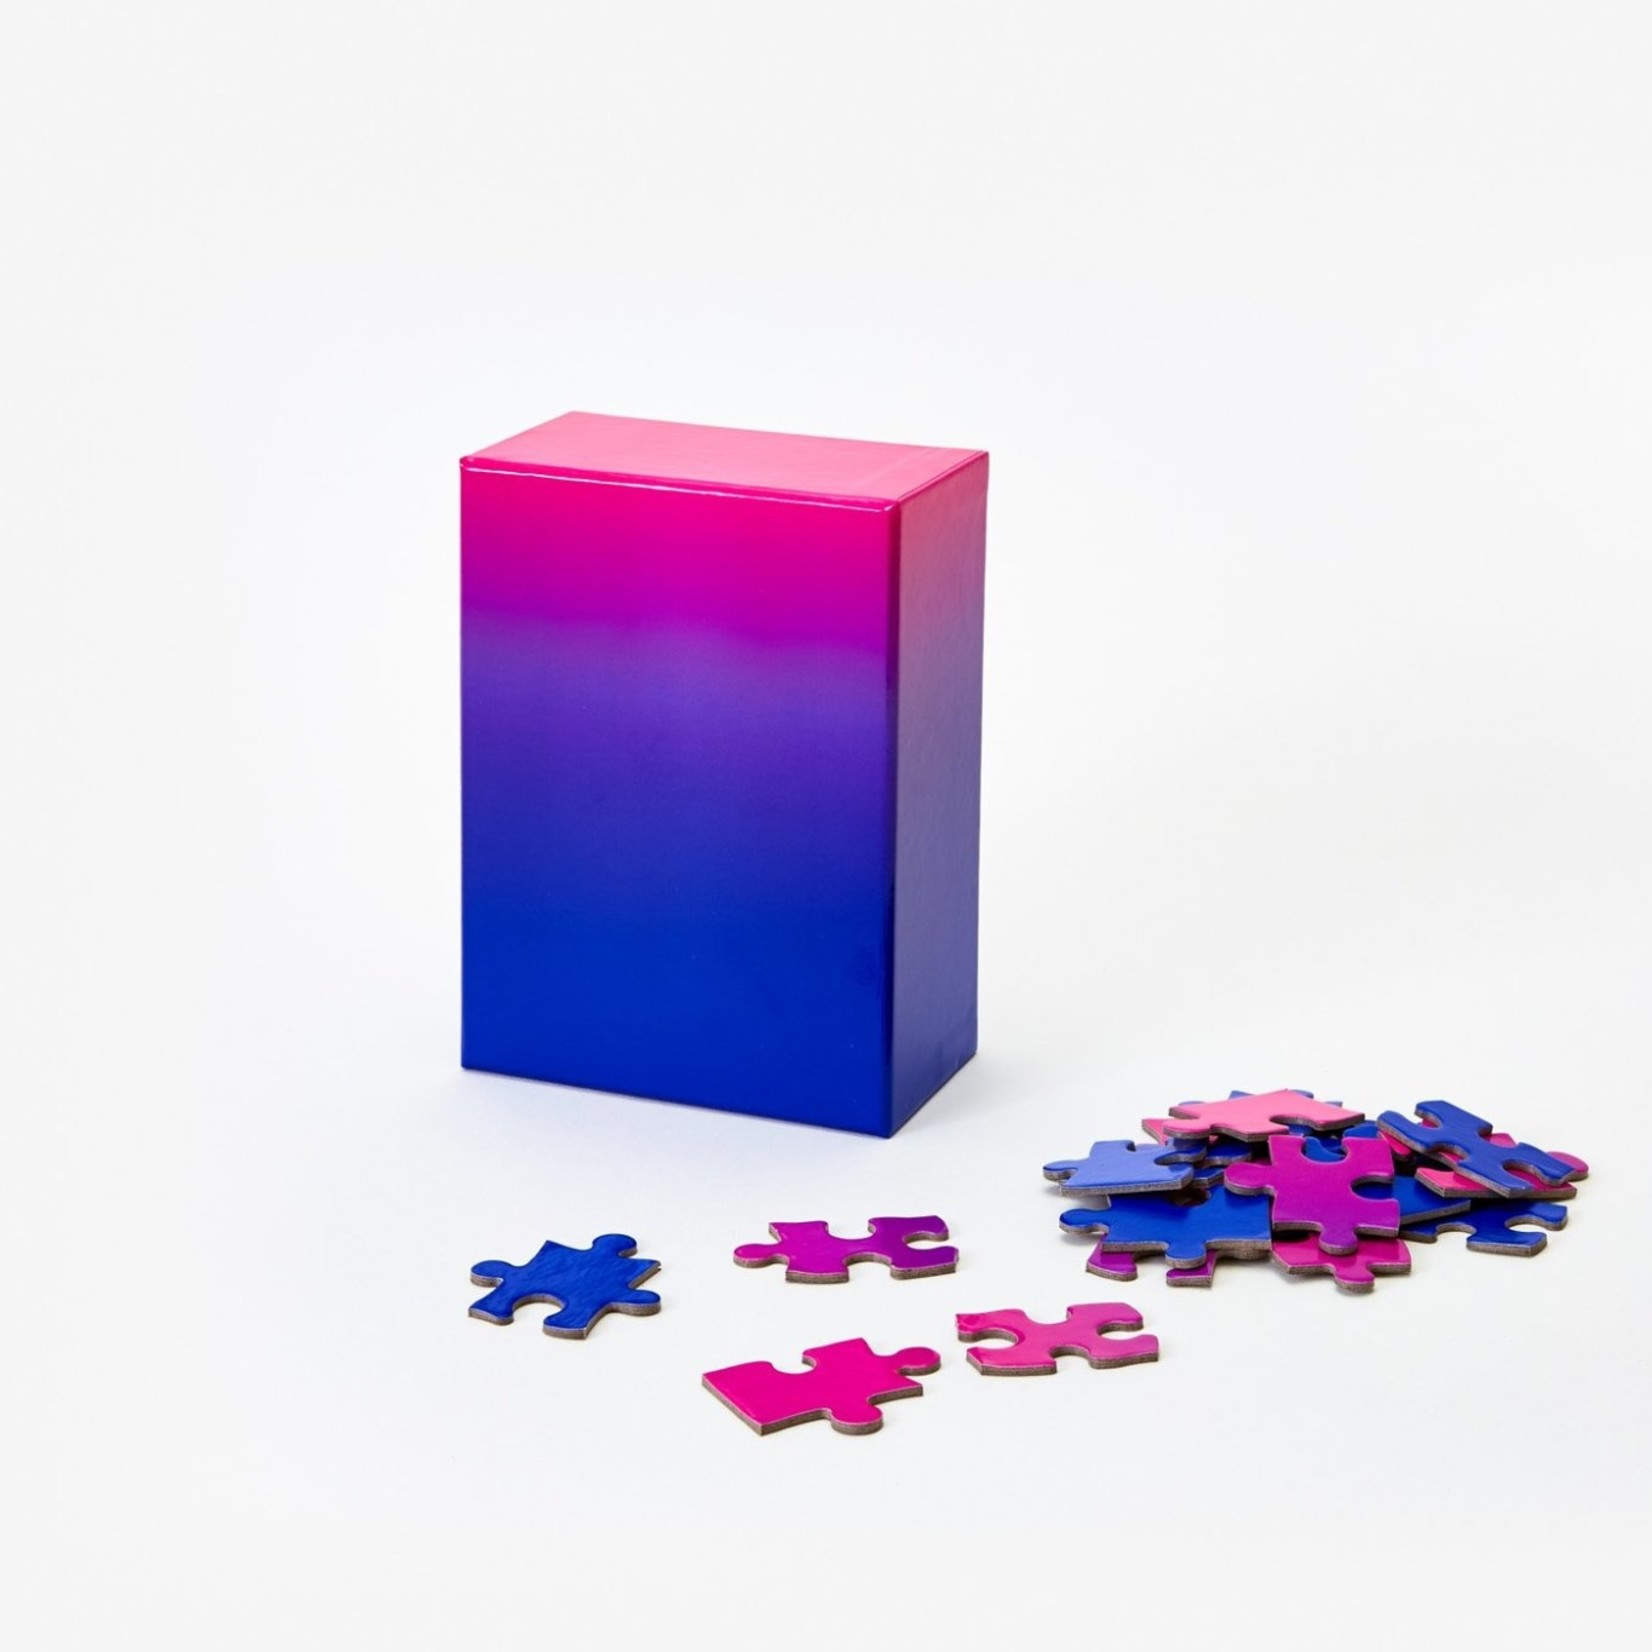 Areaware Areaware Gradient Puzzle Small Blue/Pink